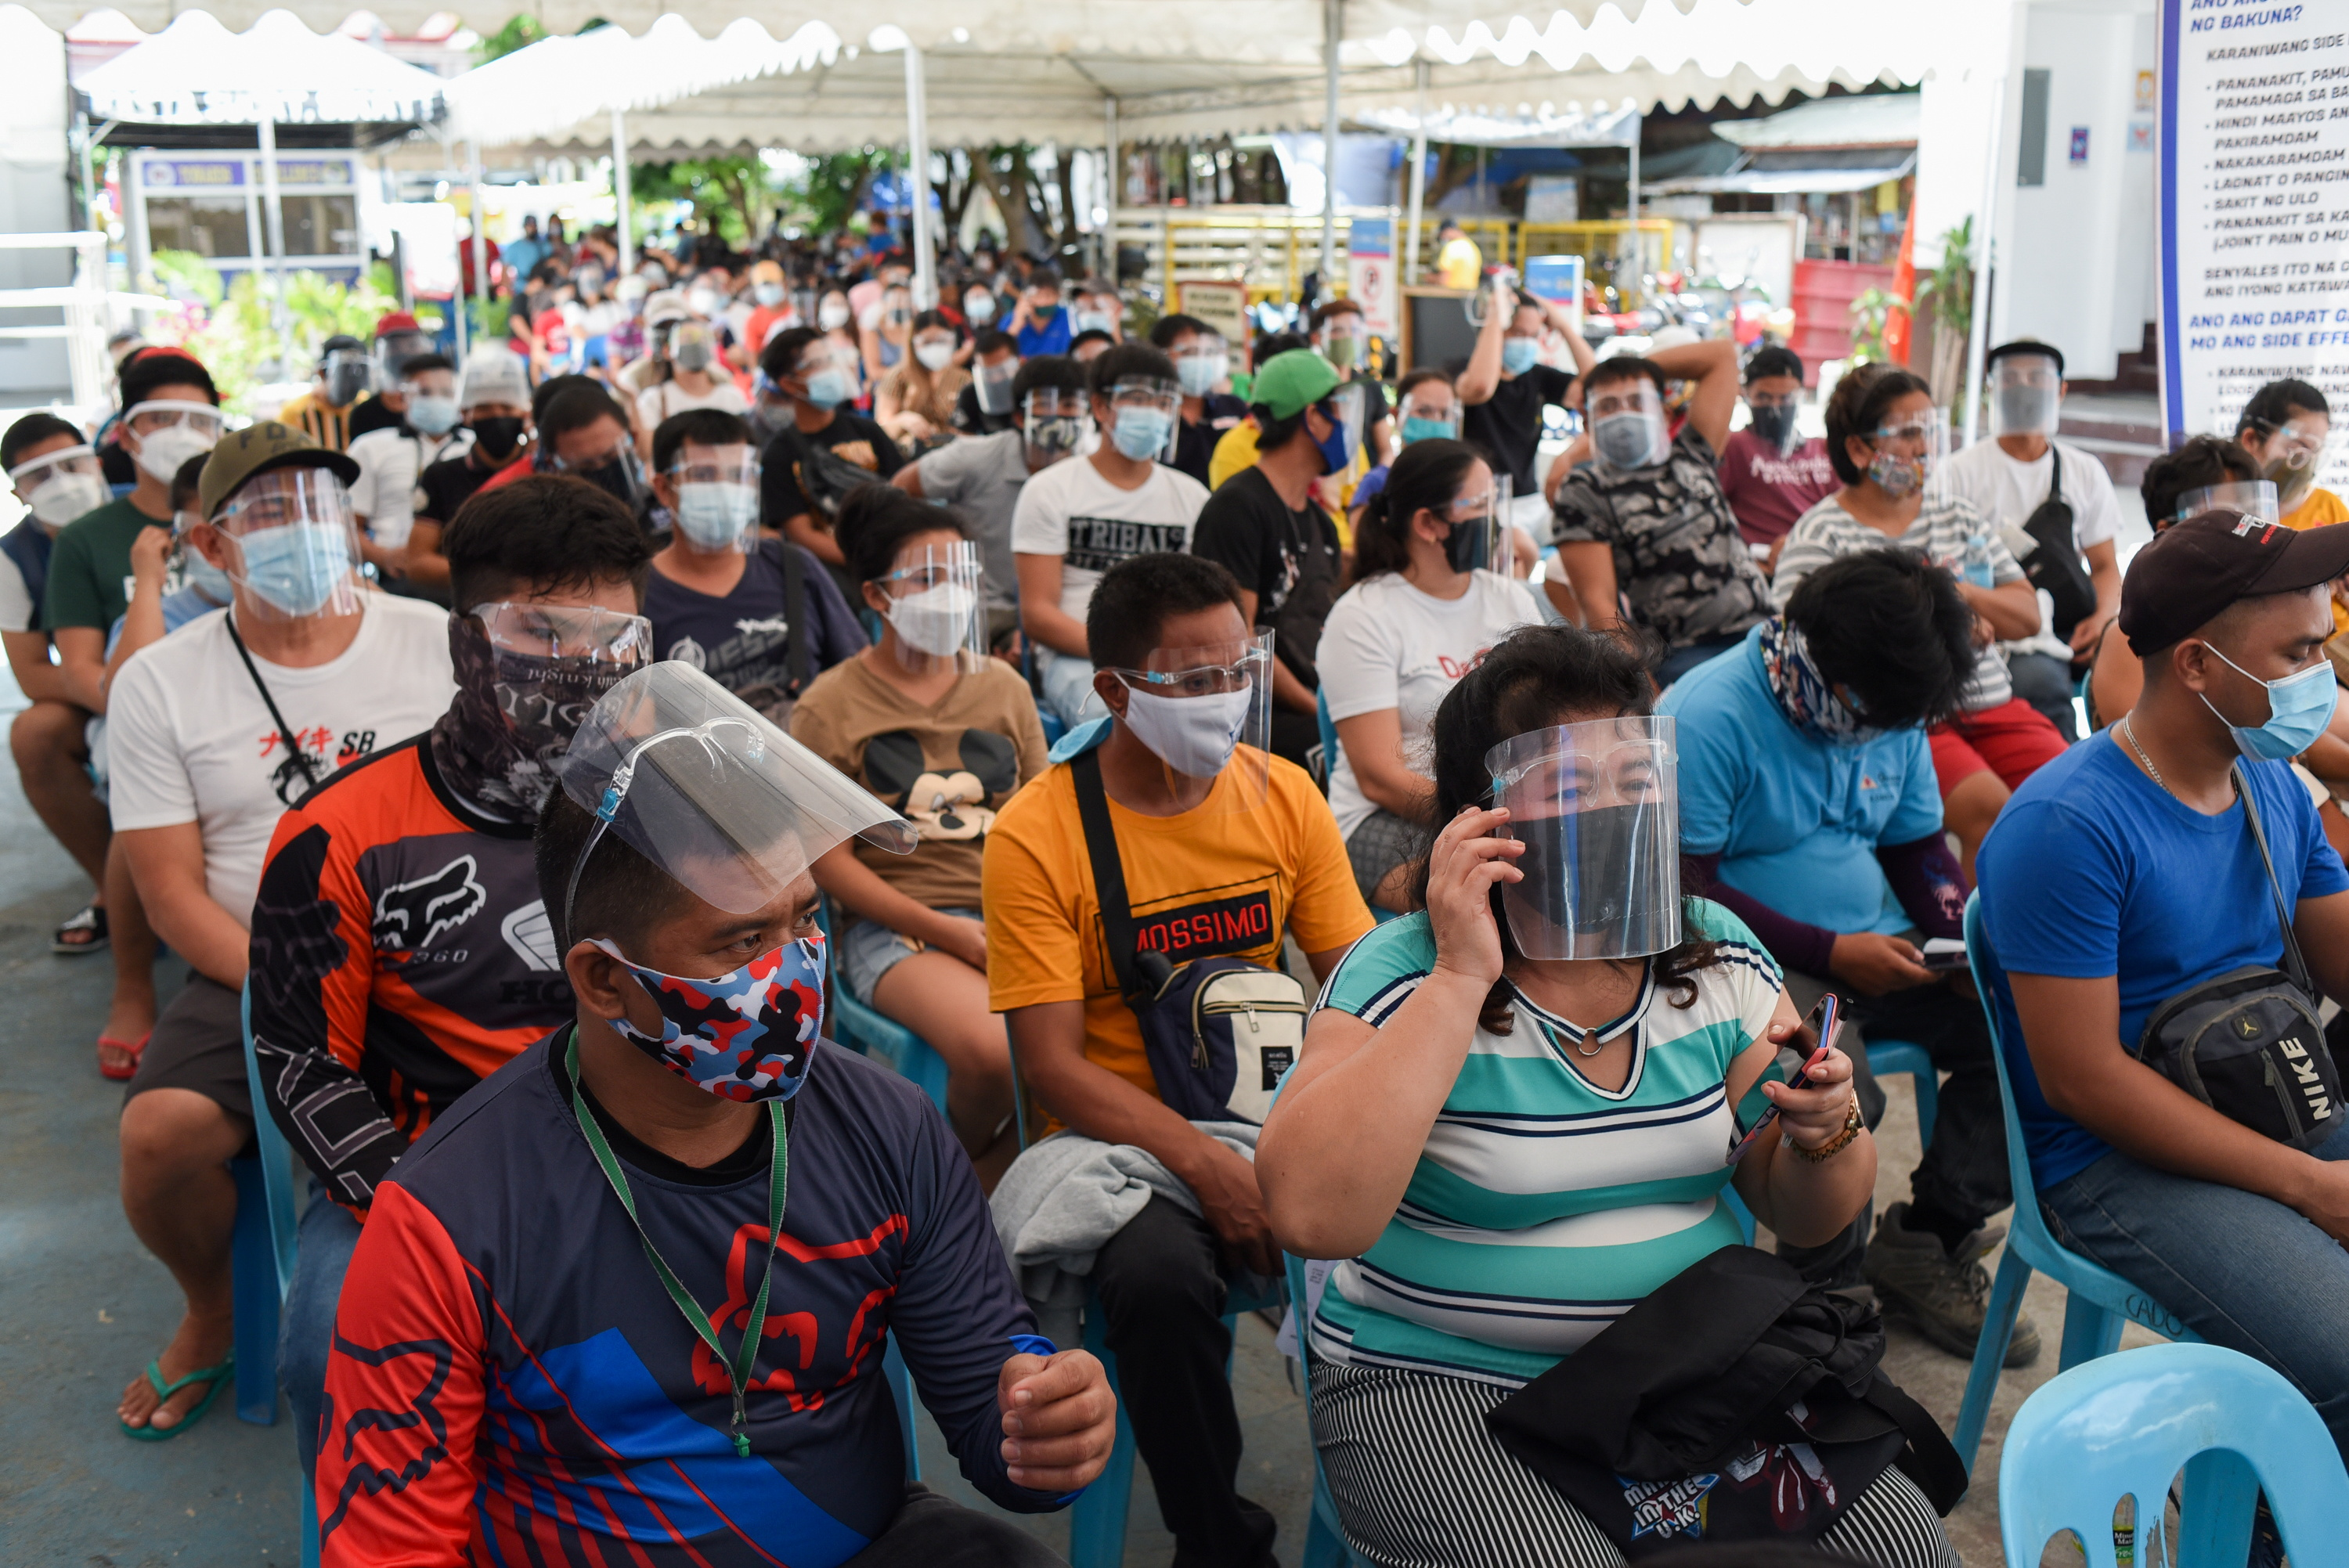 Residents wearing face masks as protection against the coronavirus disease (COVID-19) queue for vaccines, at the Barangay Sucat Covered Court, in Muntinlupa City, Metro Manila, Philippines, June 21, 2021. REUTERS/Lisa Marie David